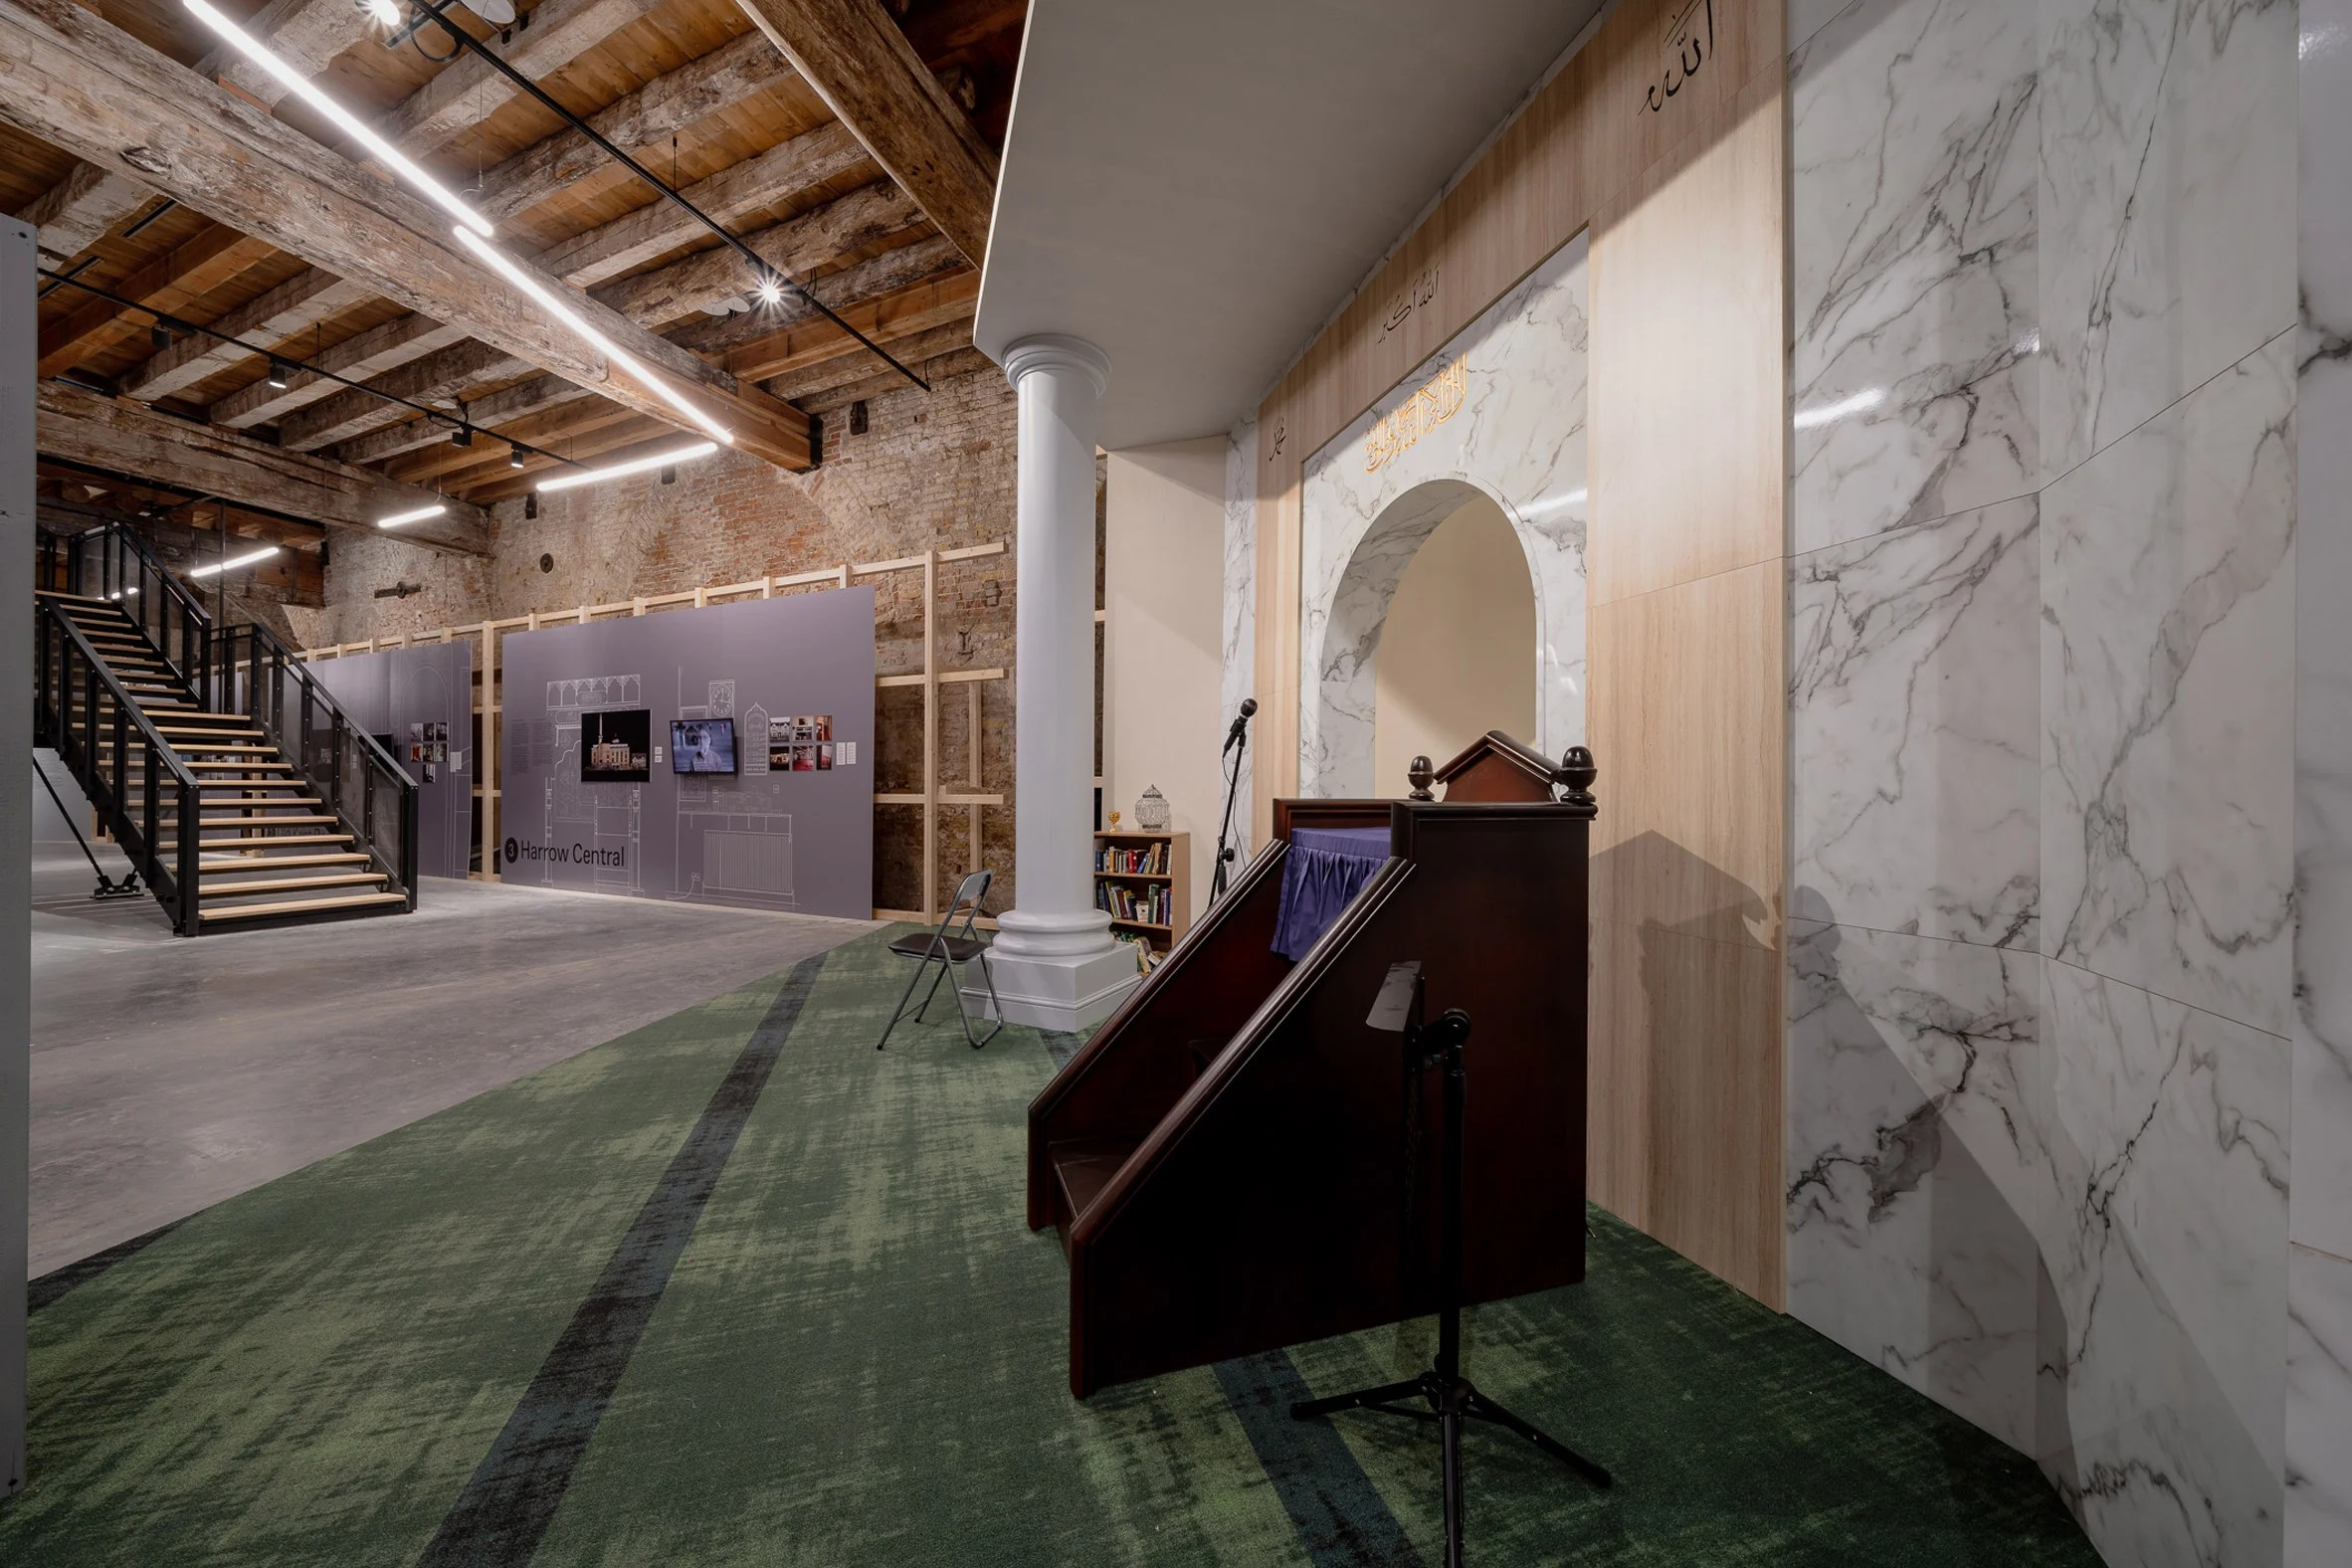 Marble panels cover the walls of the installation